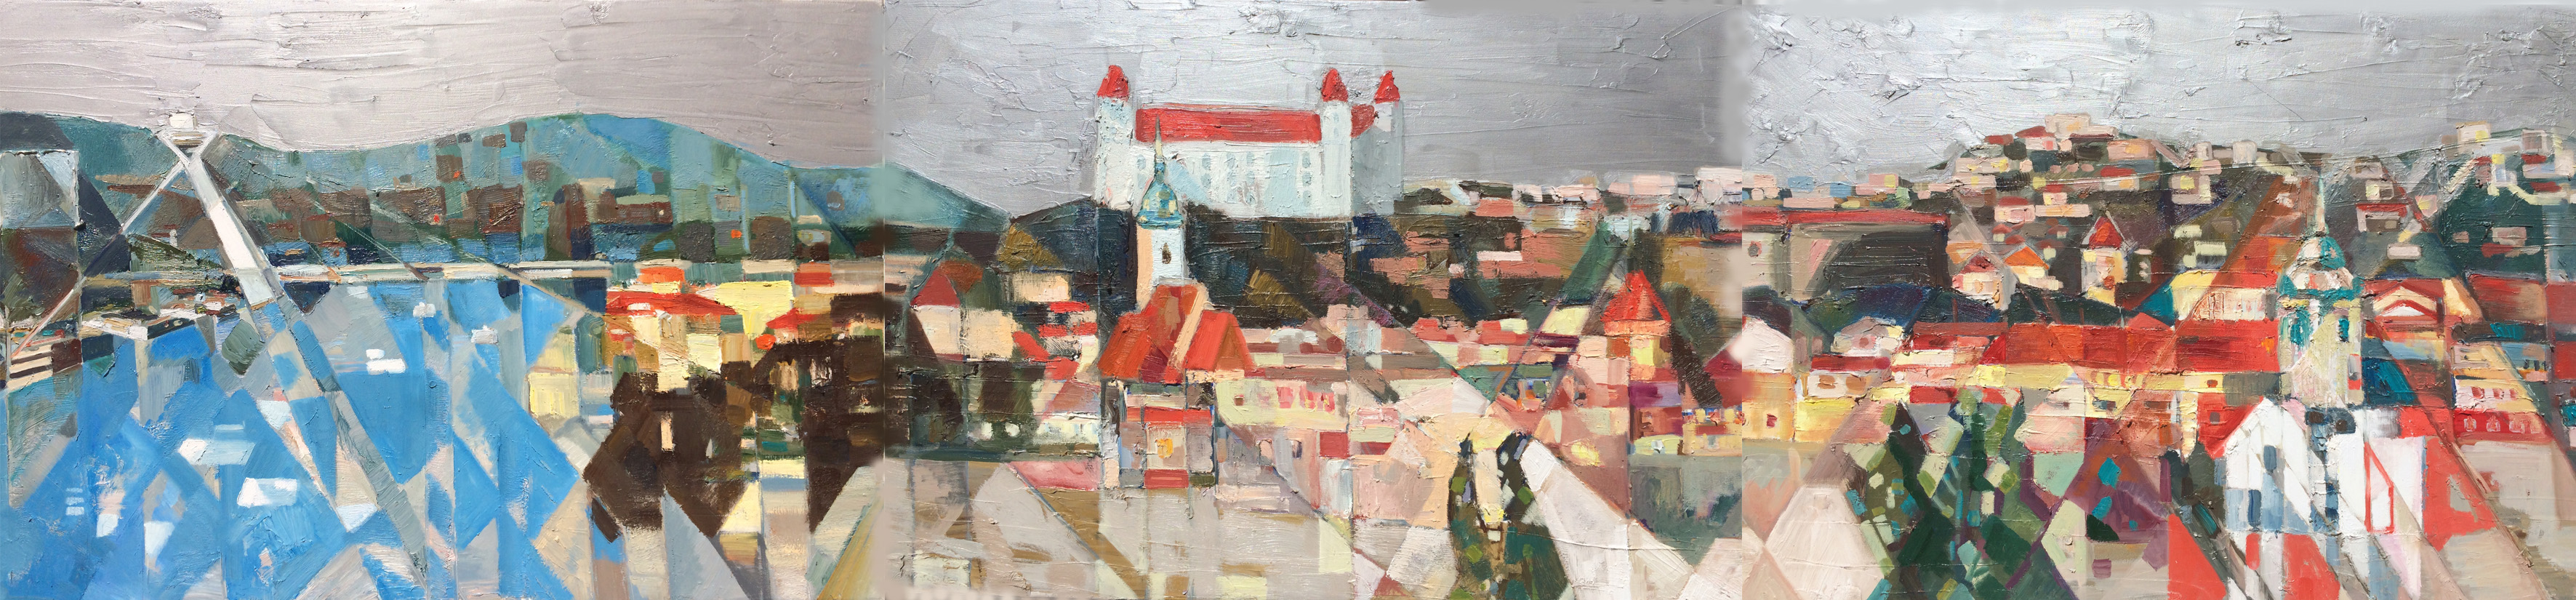 Old town ,2015 , 70x270